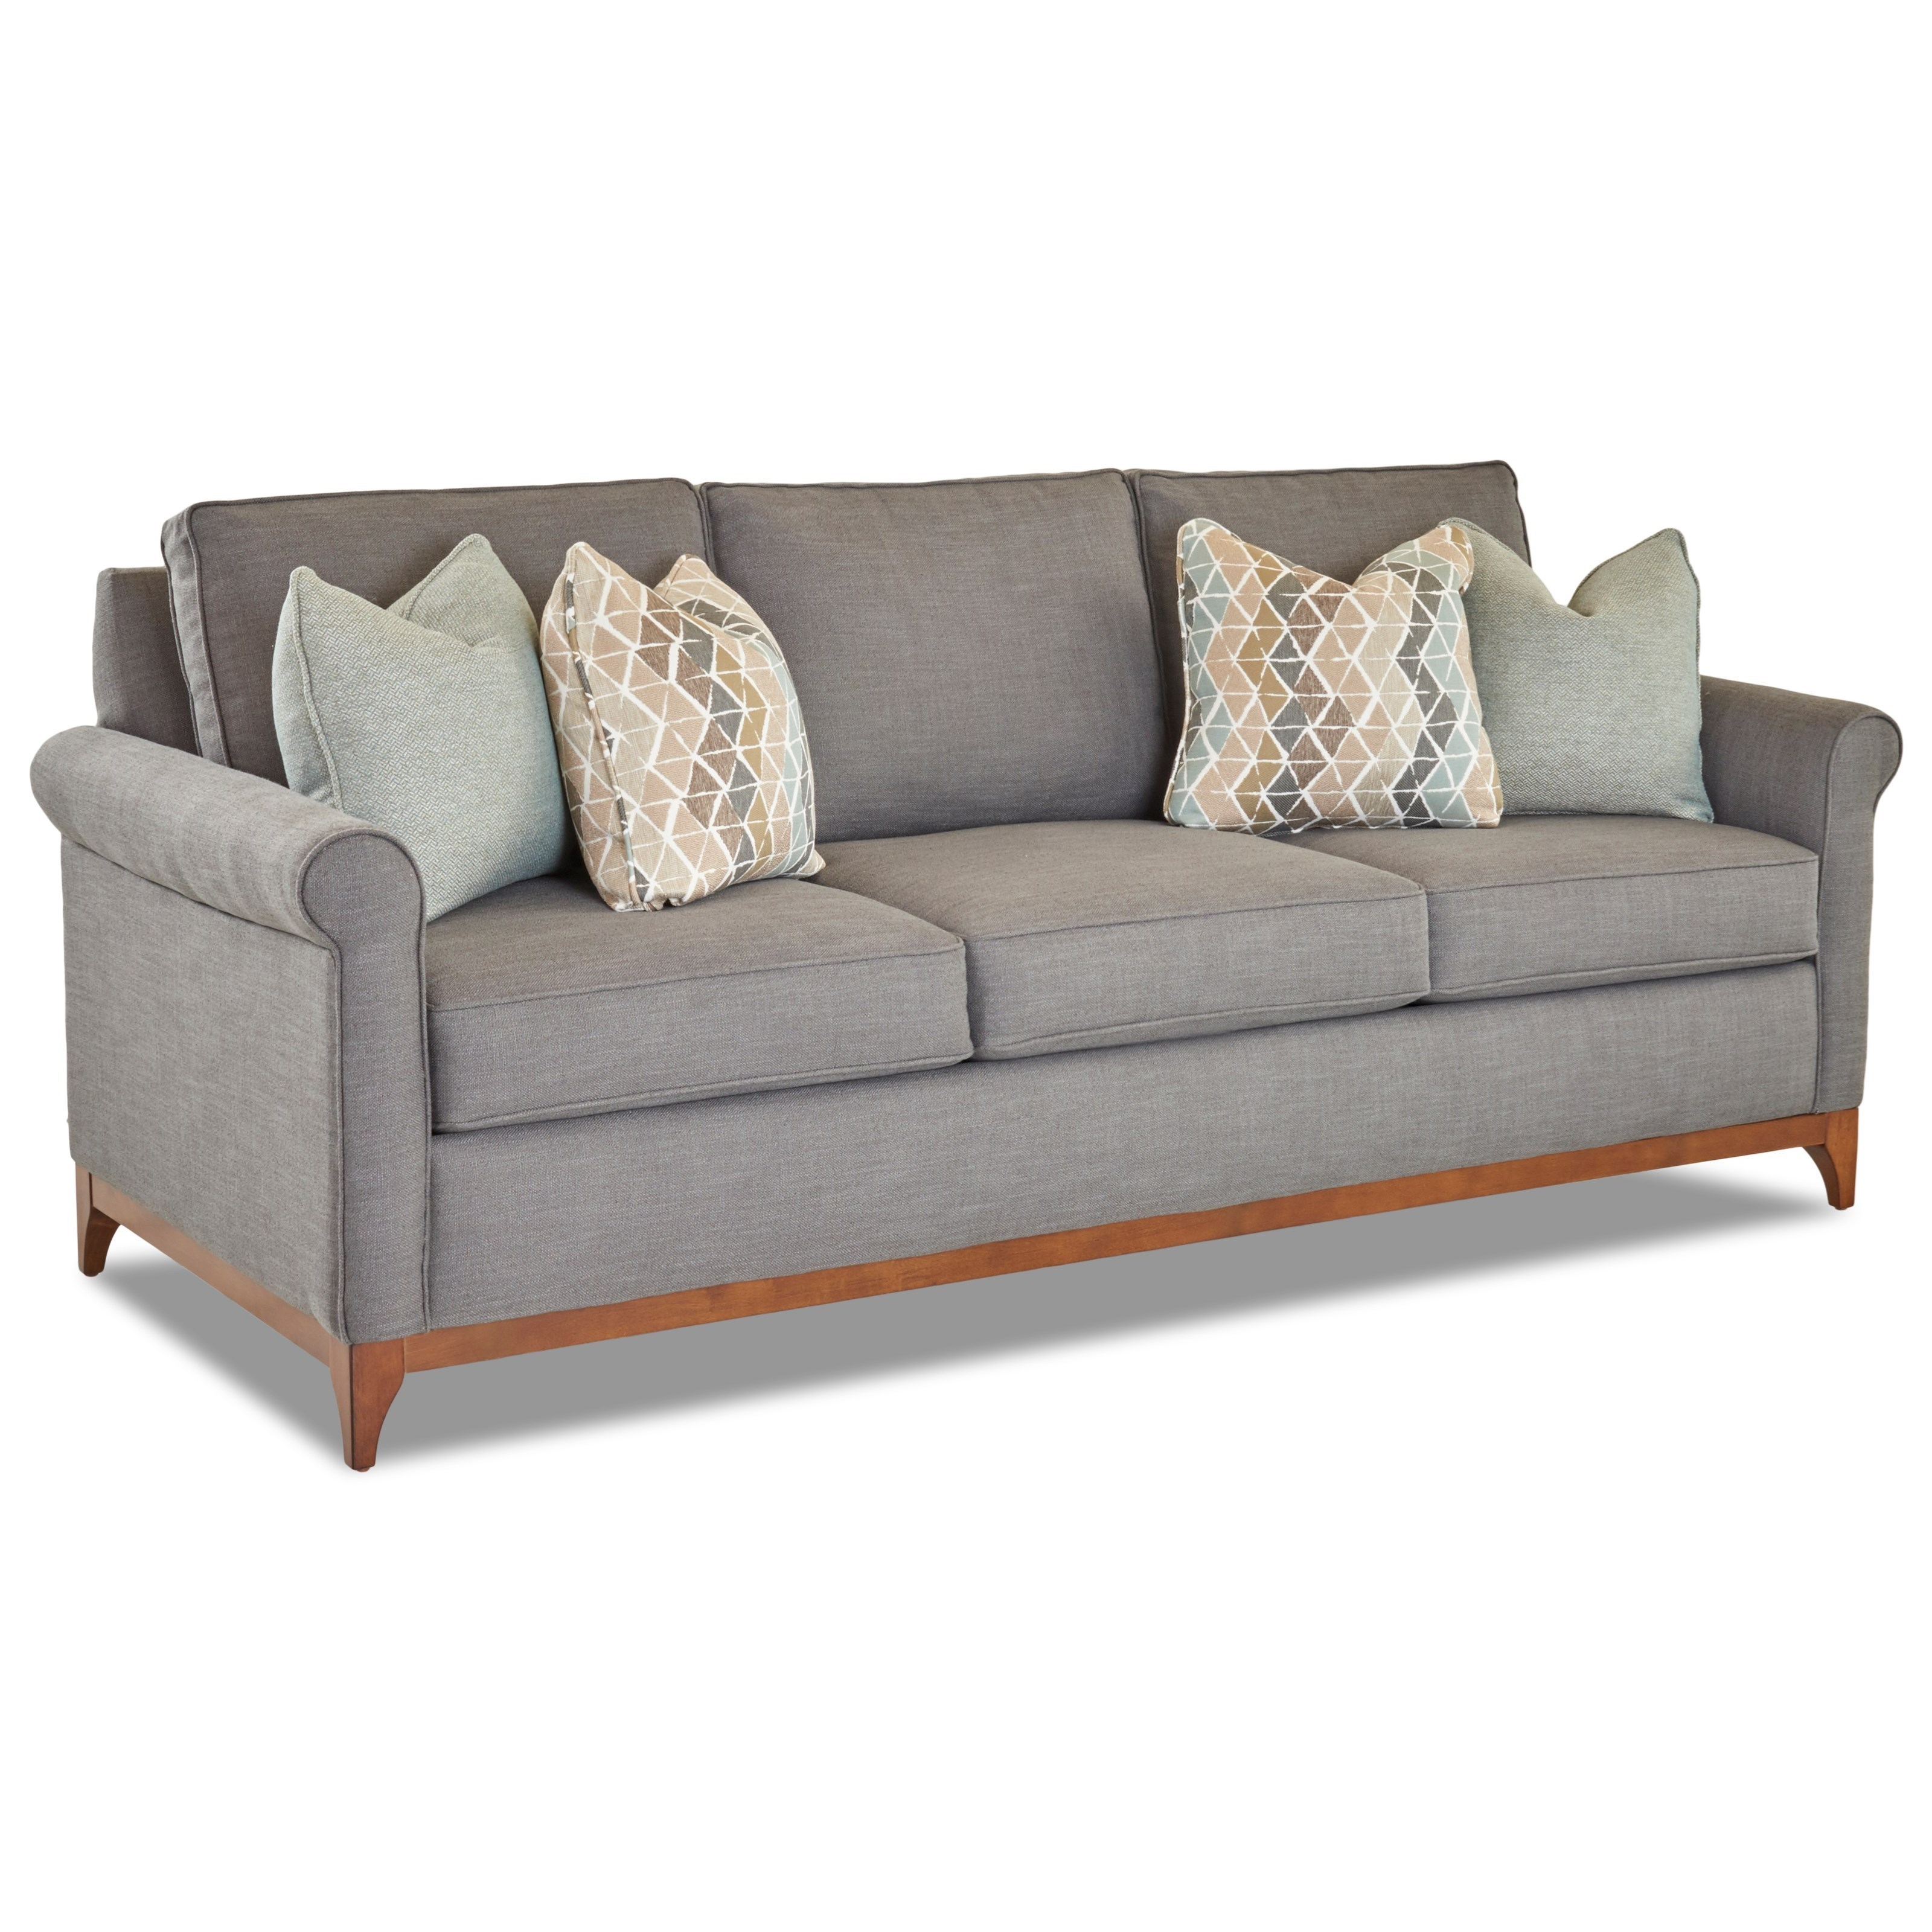 Klaussner Beason Transitional Sofa With Exposed Wood Trim | Novello Home  Furnishings | Sofas